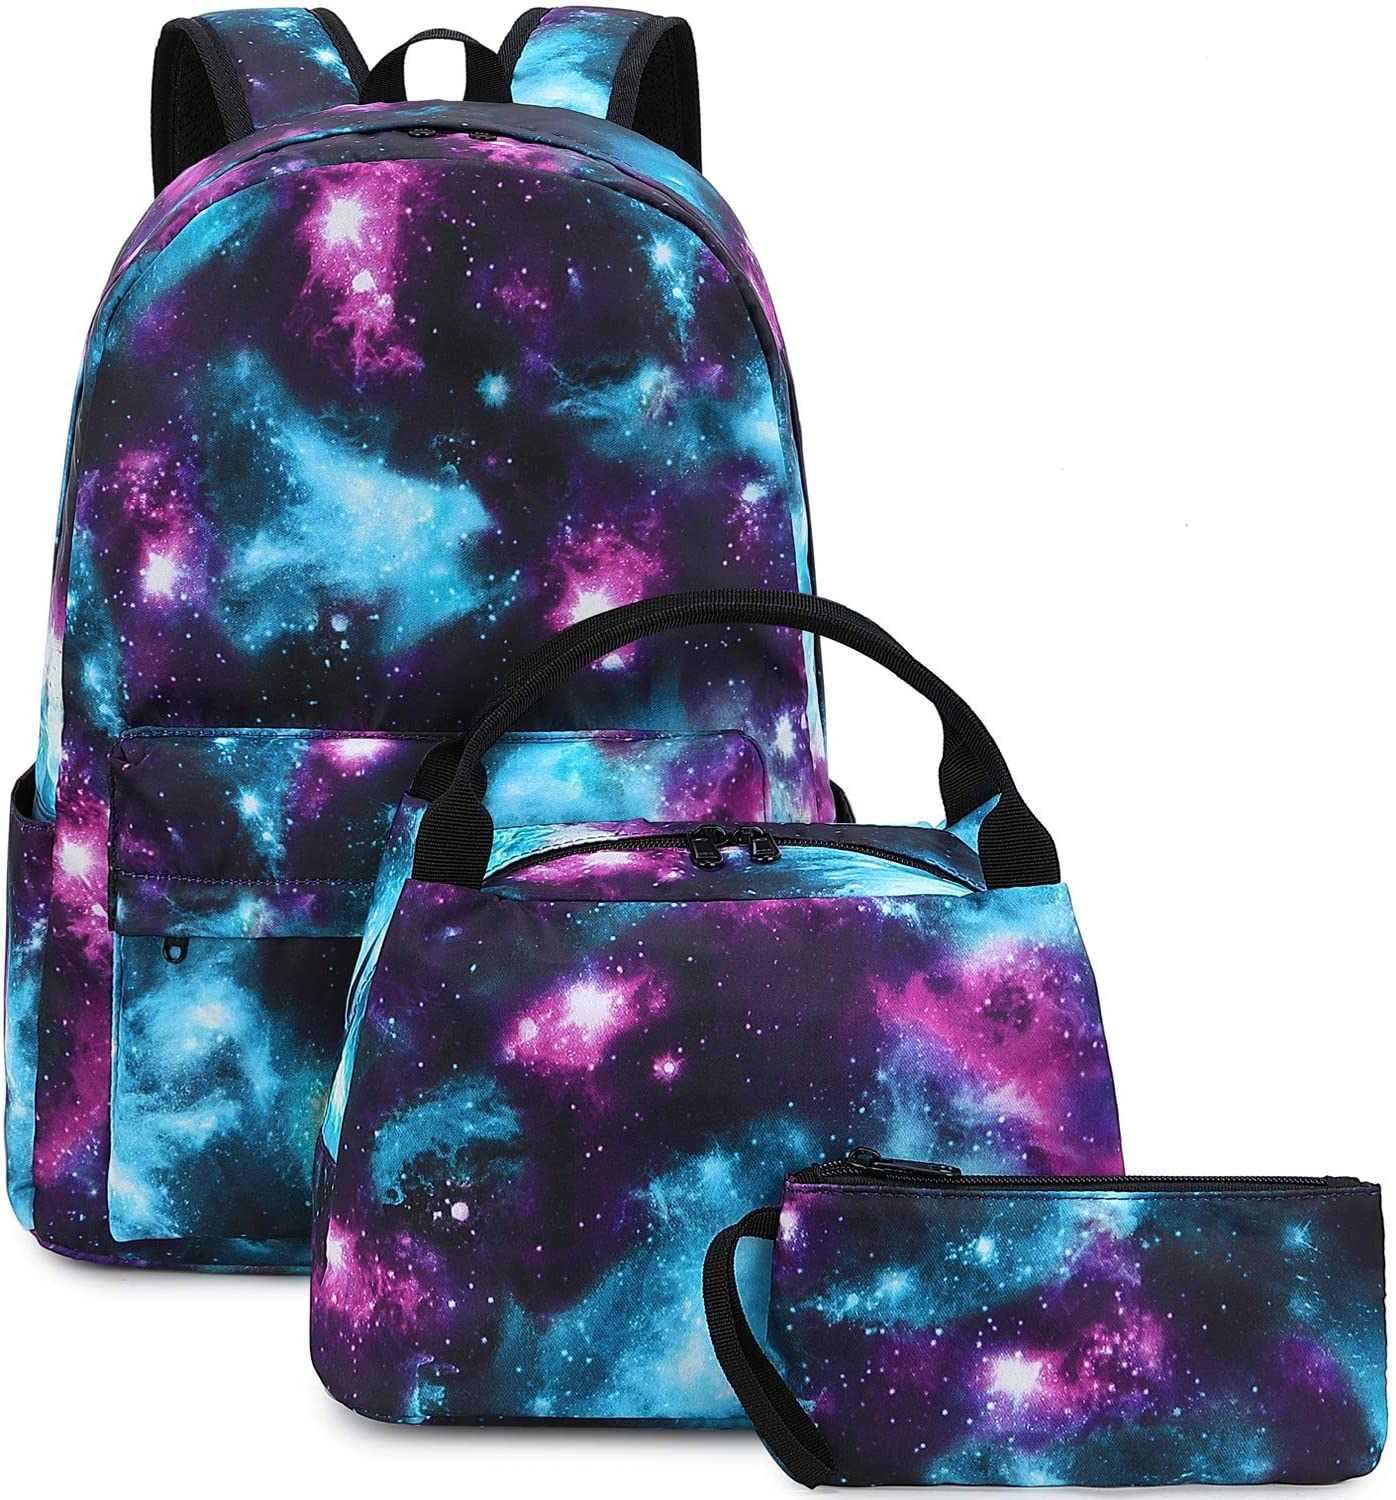 School Backpacks for Teen Girls Galaxy Backpack and Lunchbox Set for Kids Laptop Book Bag (Y0060-3/Galaxy Blue)